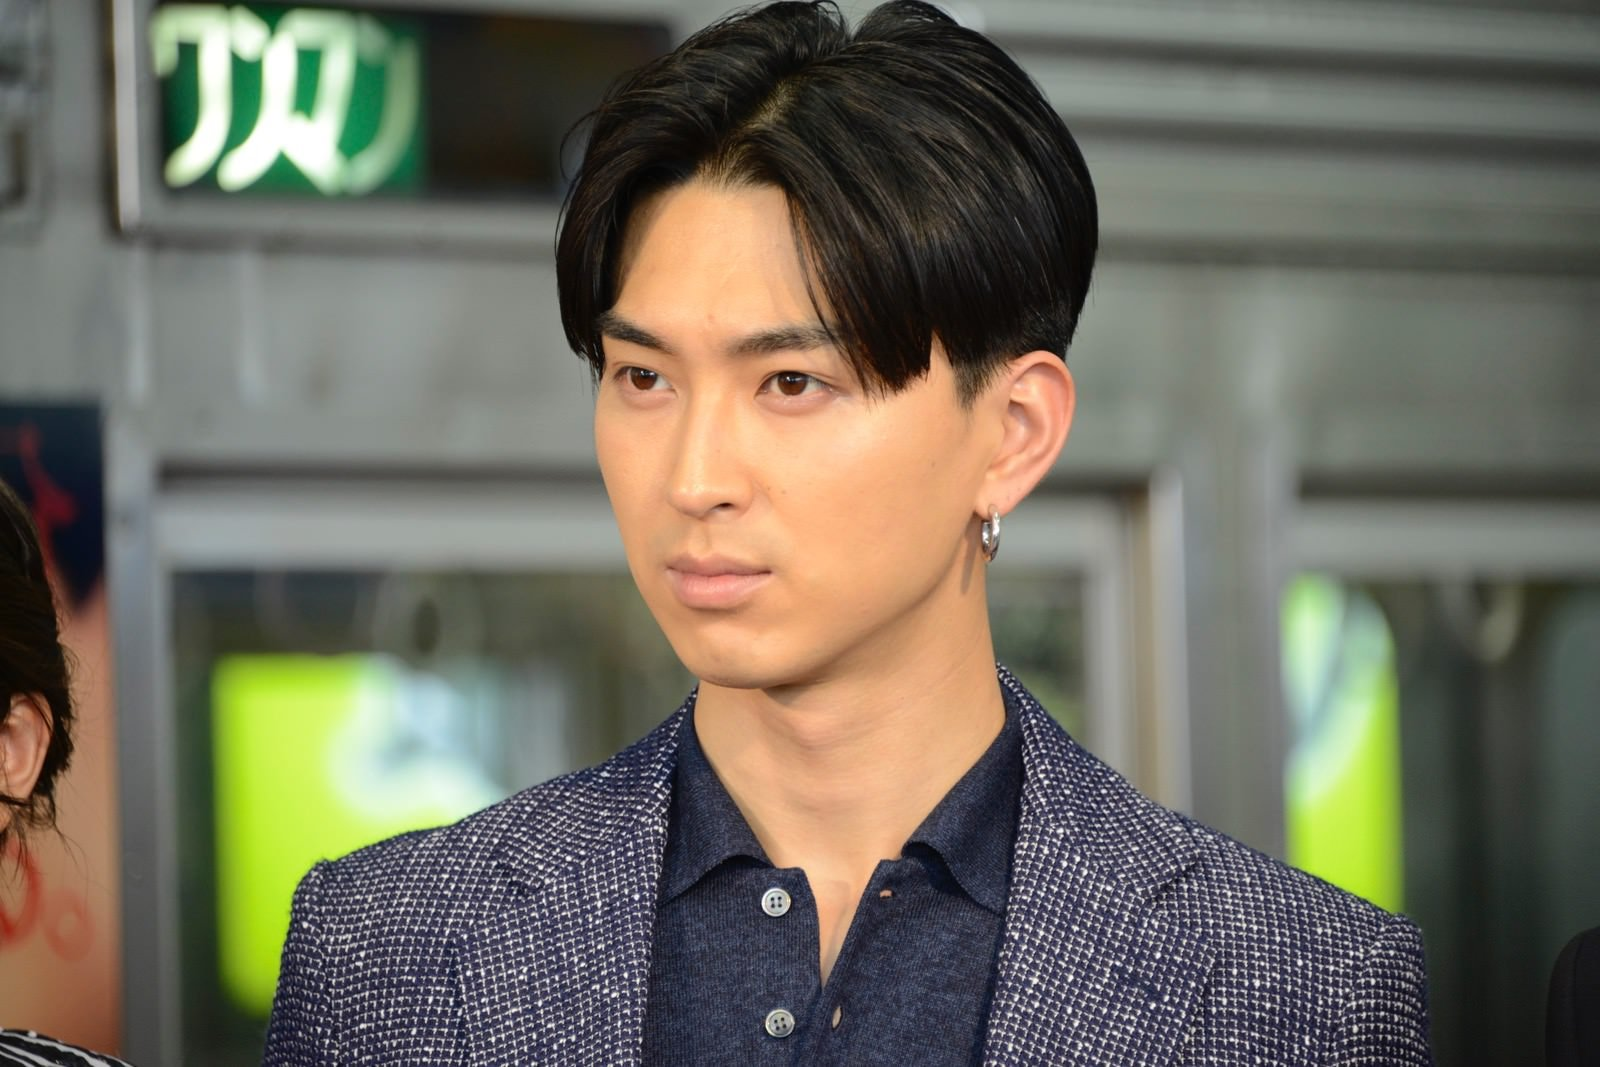 img 5a6d709f0a8ed.png?resize=300,169 - 熱愛報道の松田翔太。恋多きうわさもついに年貢の納め時か。